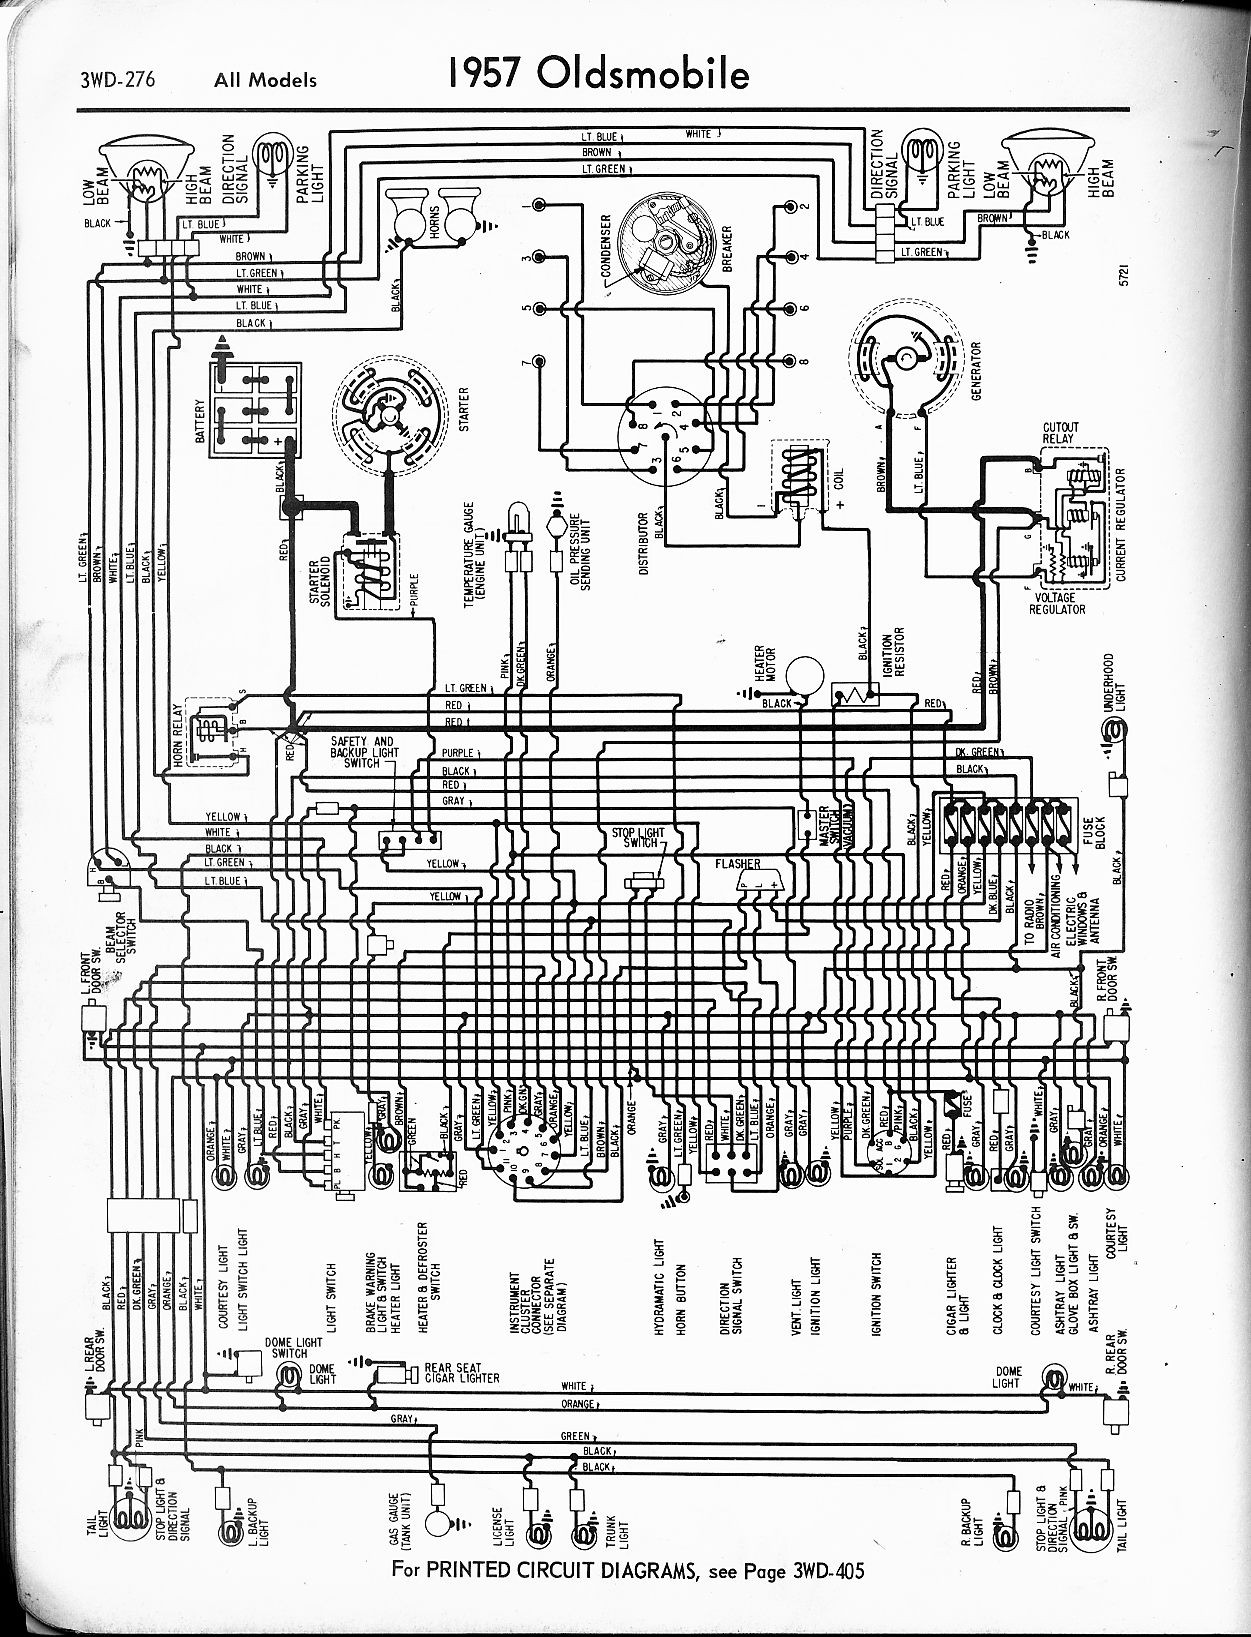 Wiring Diagrams For 1984 Oldsmobile Cutlass Wire Center 1993 Mercury Sable Engine Diagram 2001 Ford Mustang Wiper Motor Rh Detoxicrecenze Com Ciera